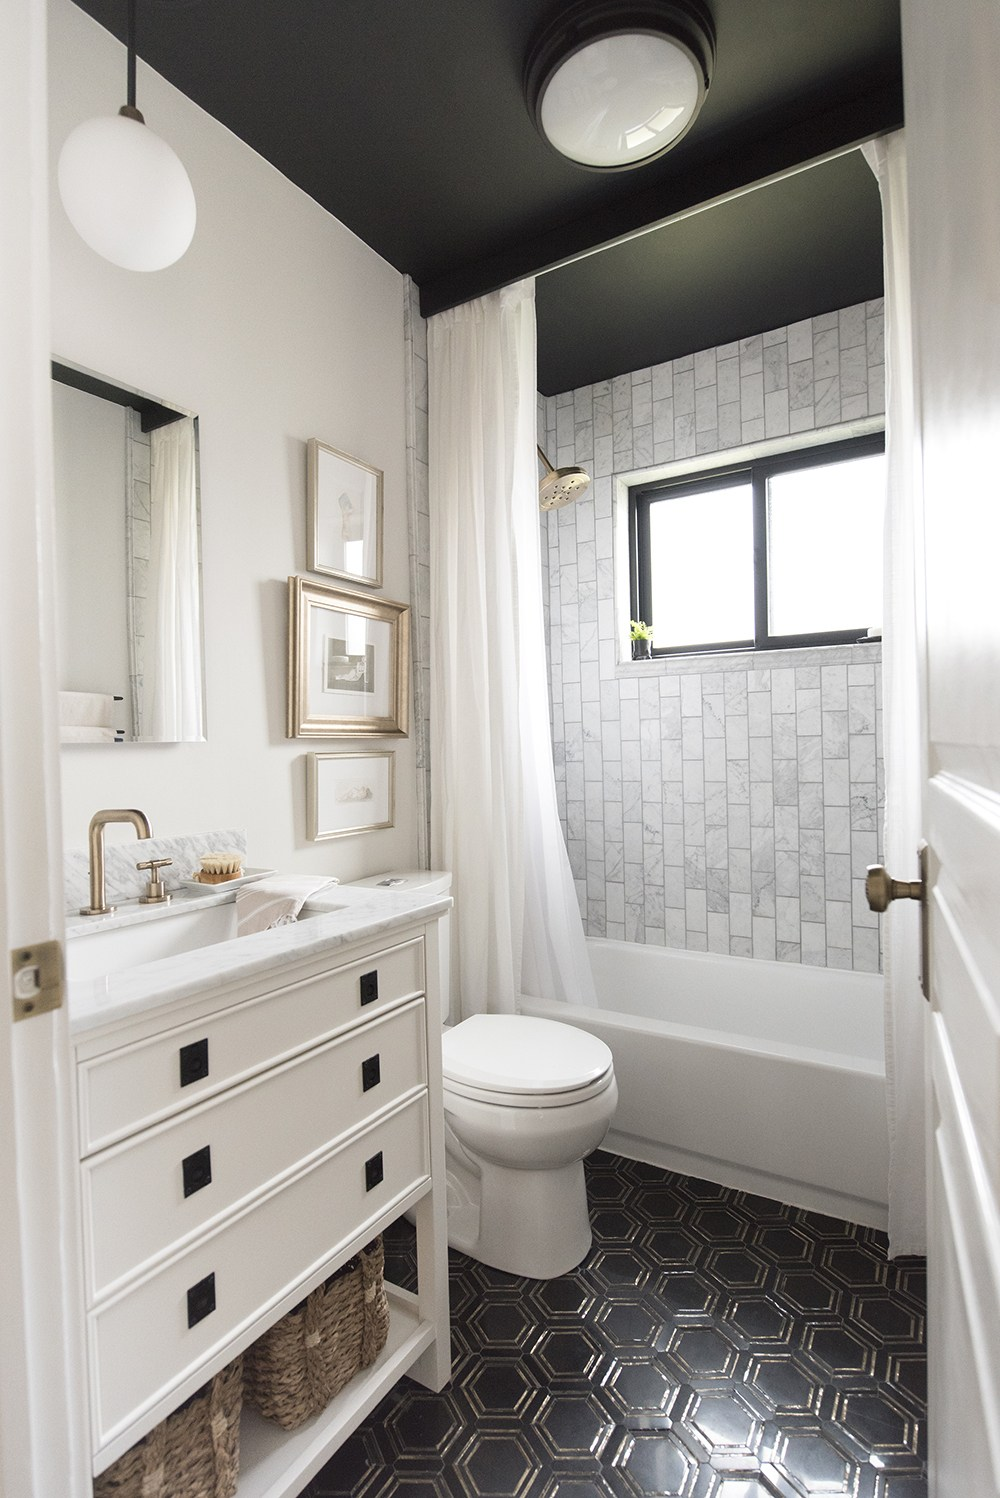 Room For Tuesday Chic-Bathroom.jpg